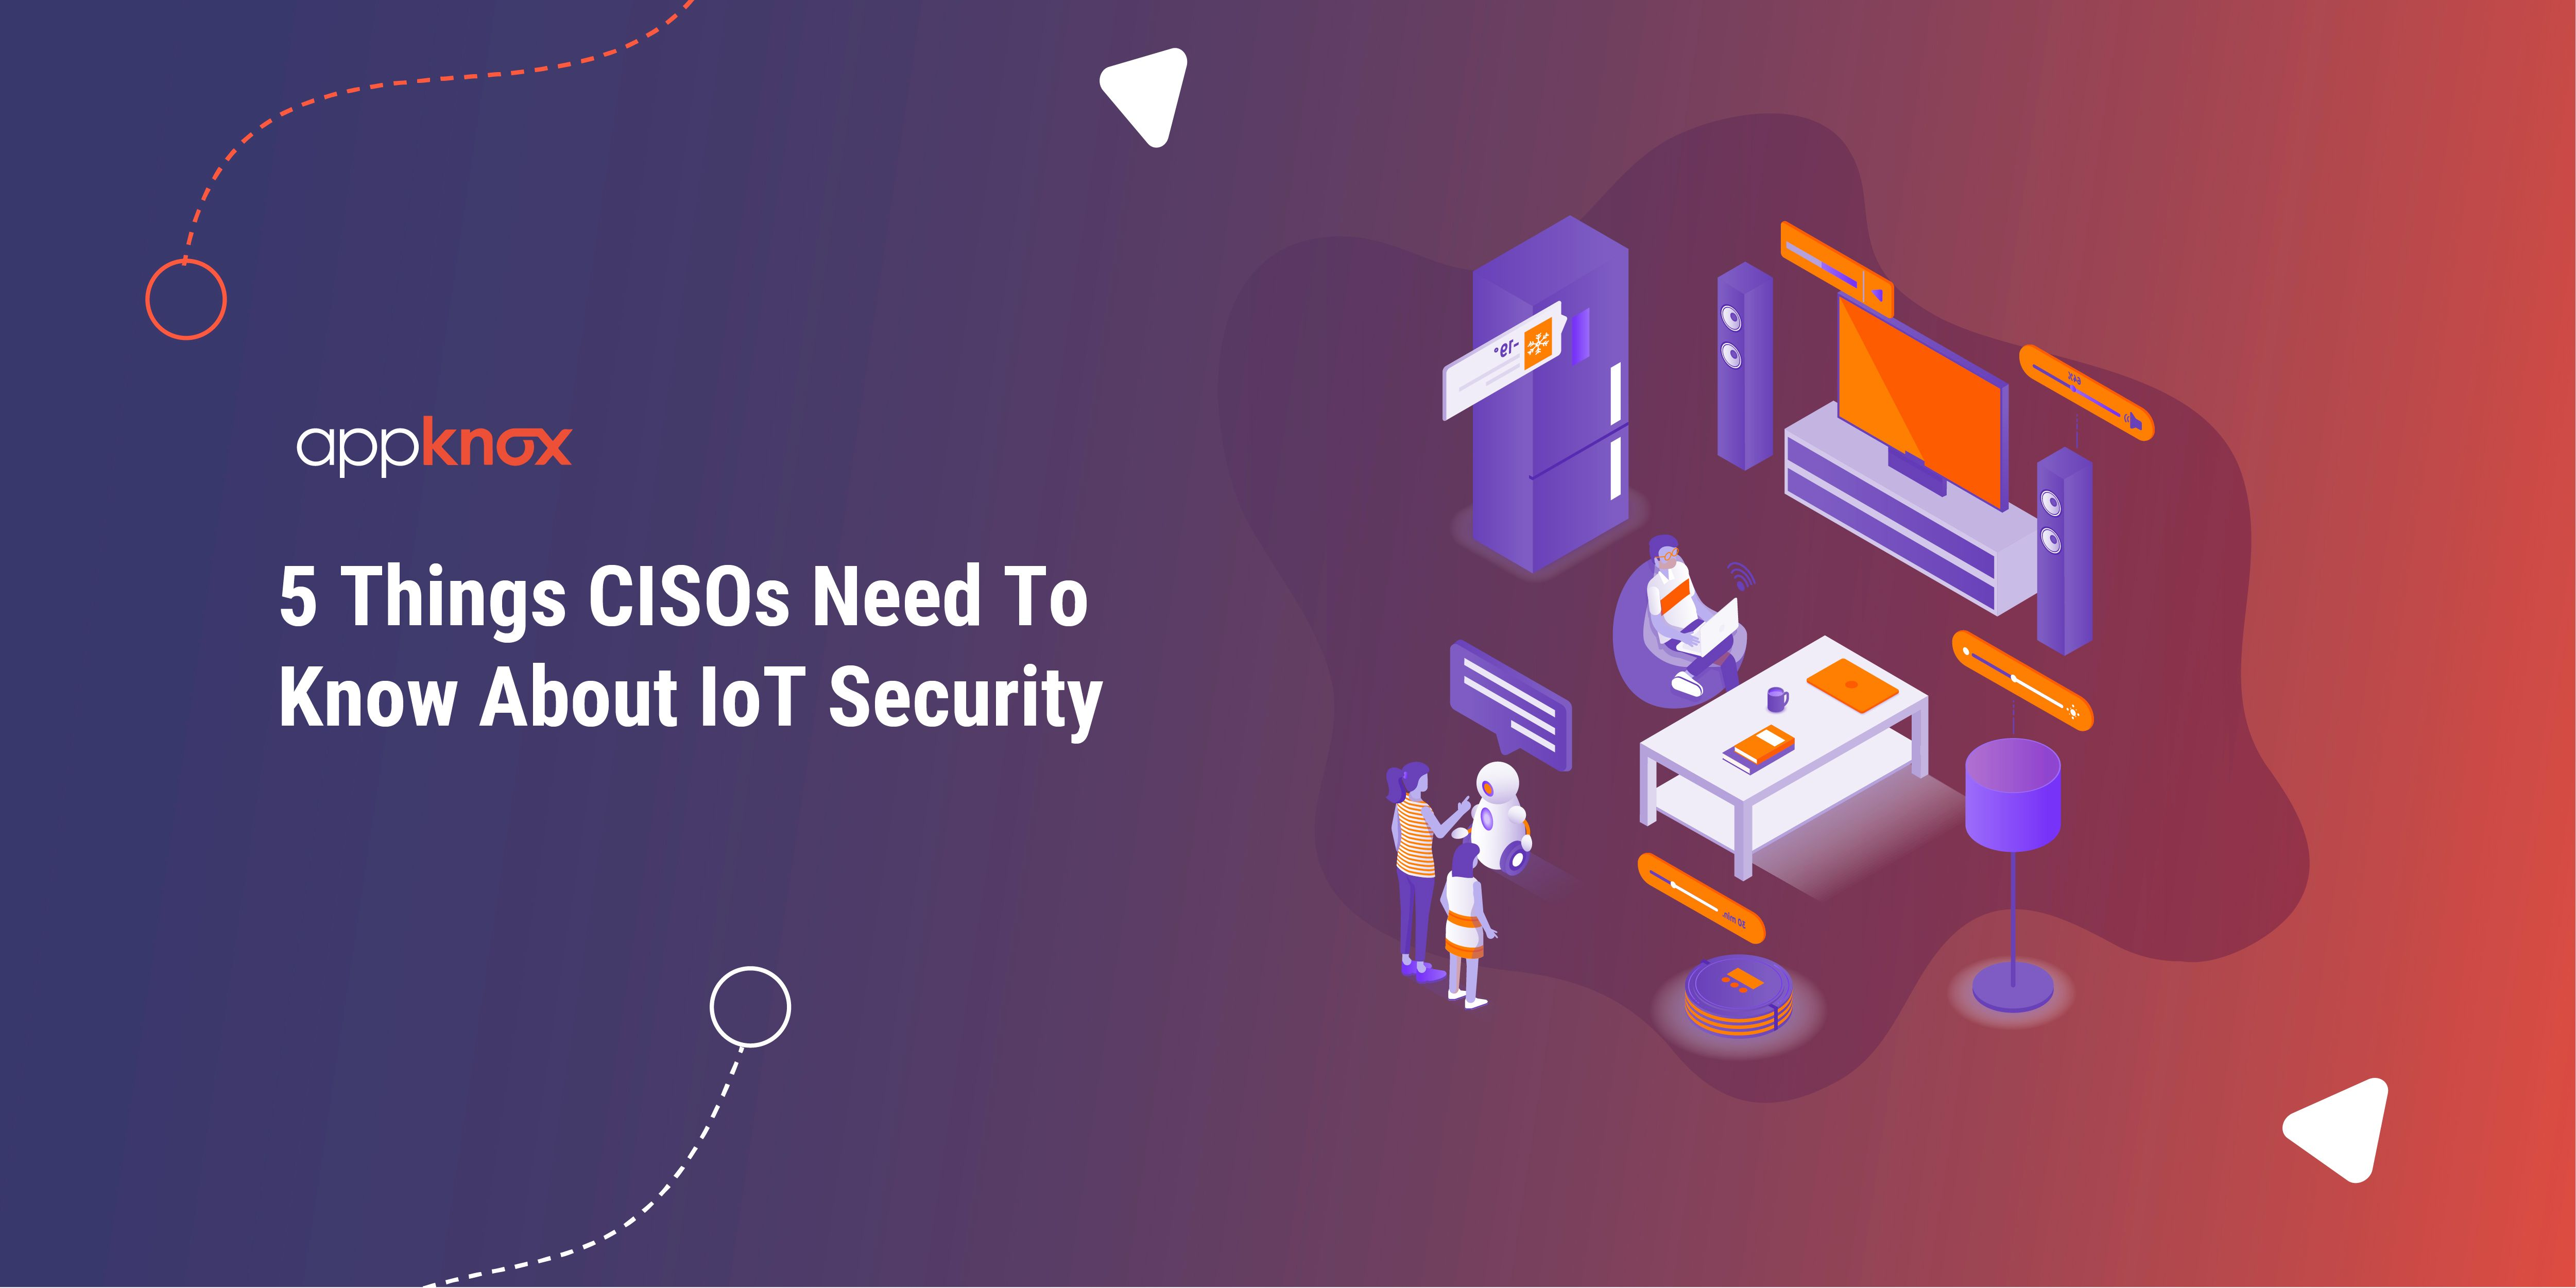 5 Things CISOs Need To Know About IoT Security